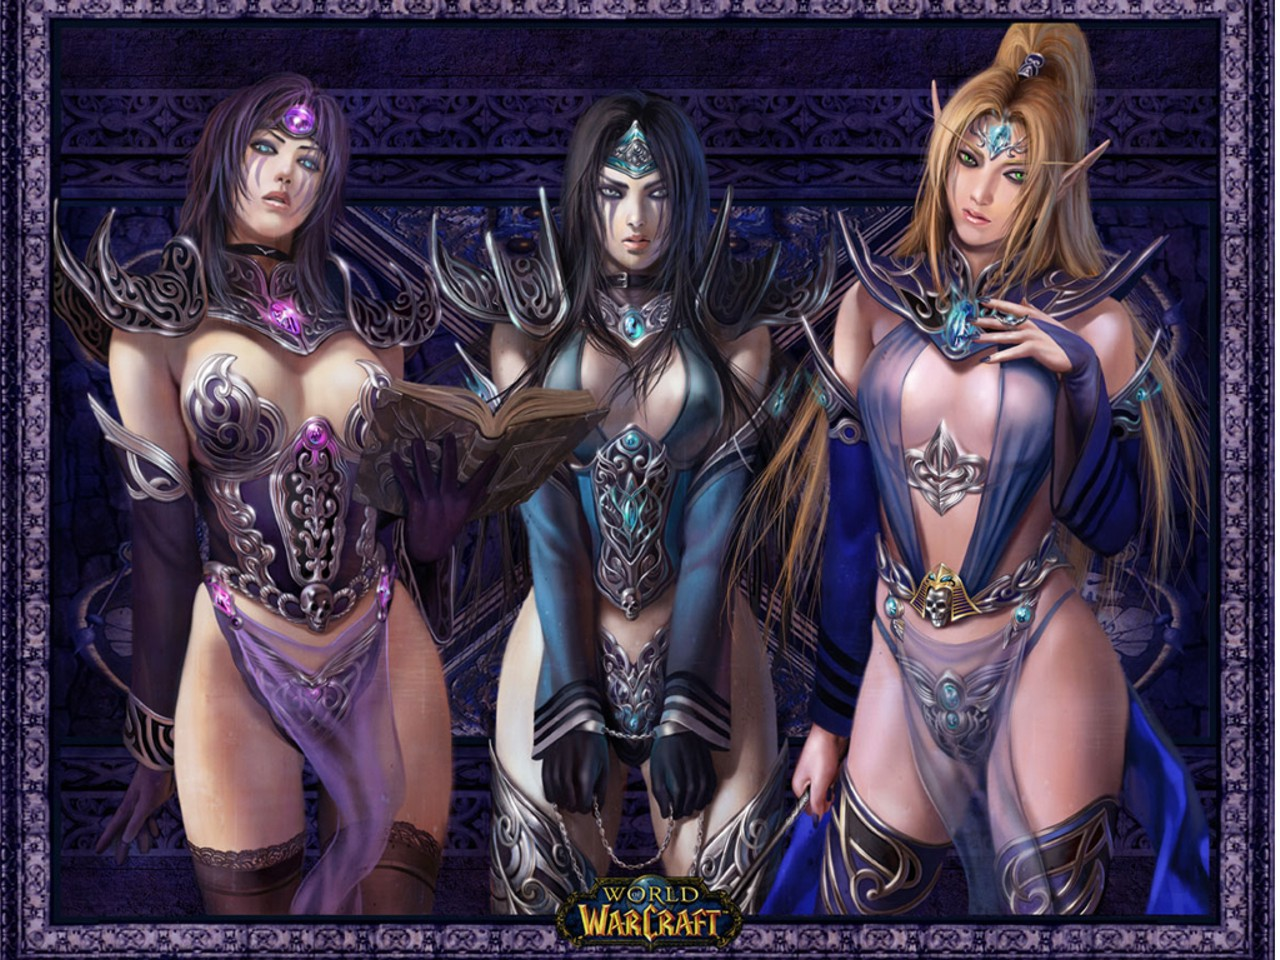 Три девушки 1280x960 352KB World of WarCraft